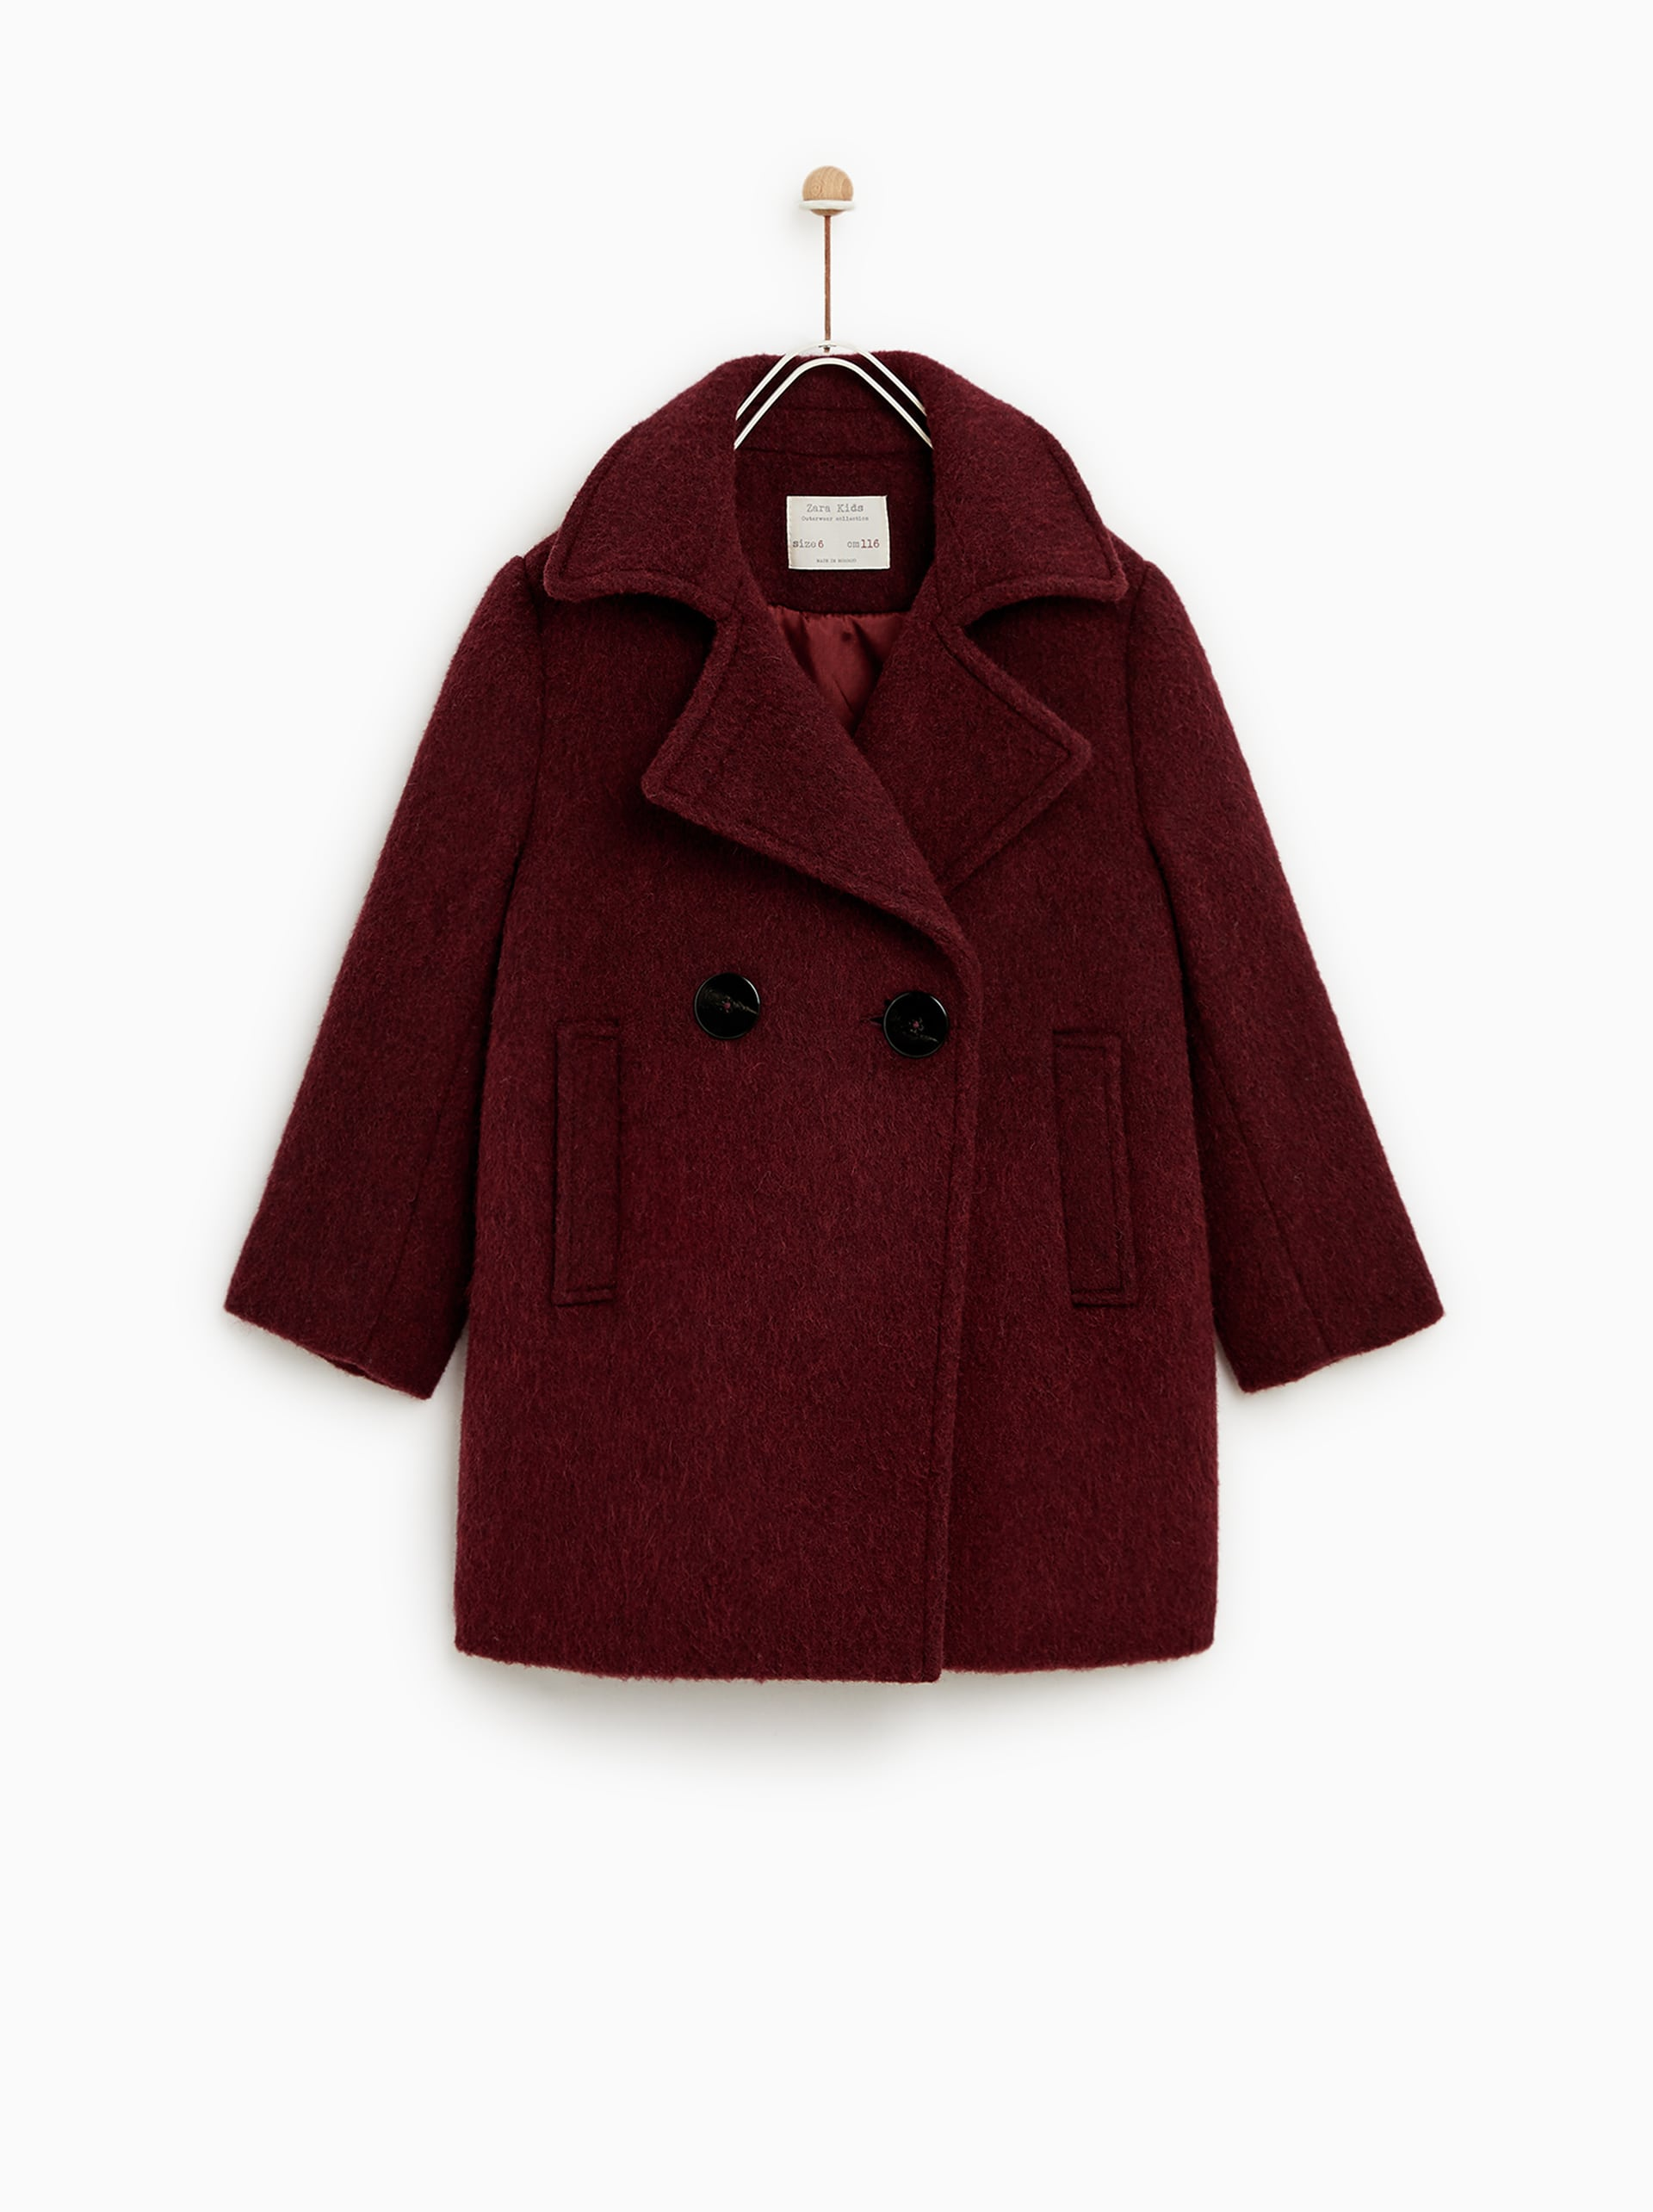 zara-girls-burgundy-coat